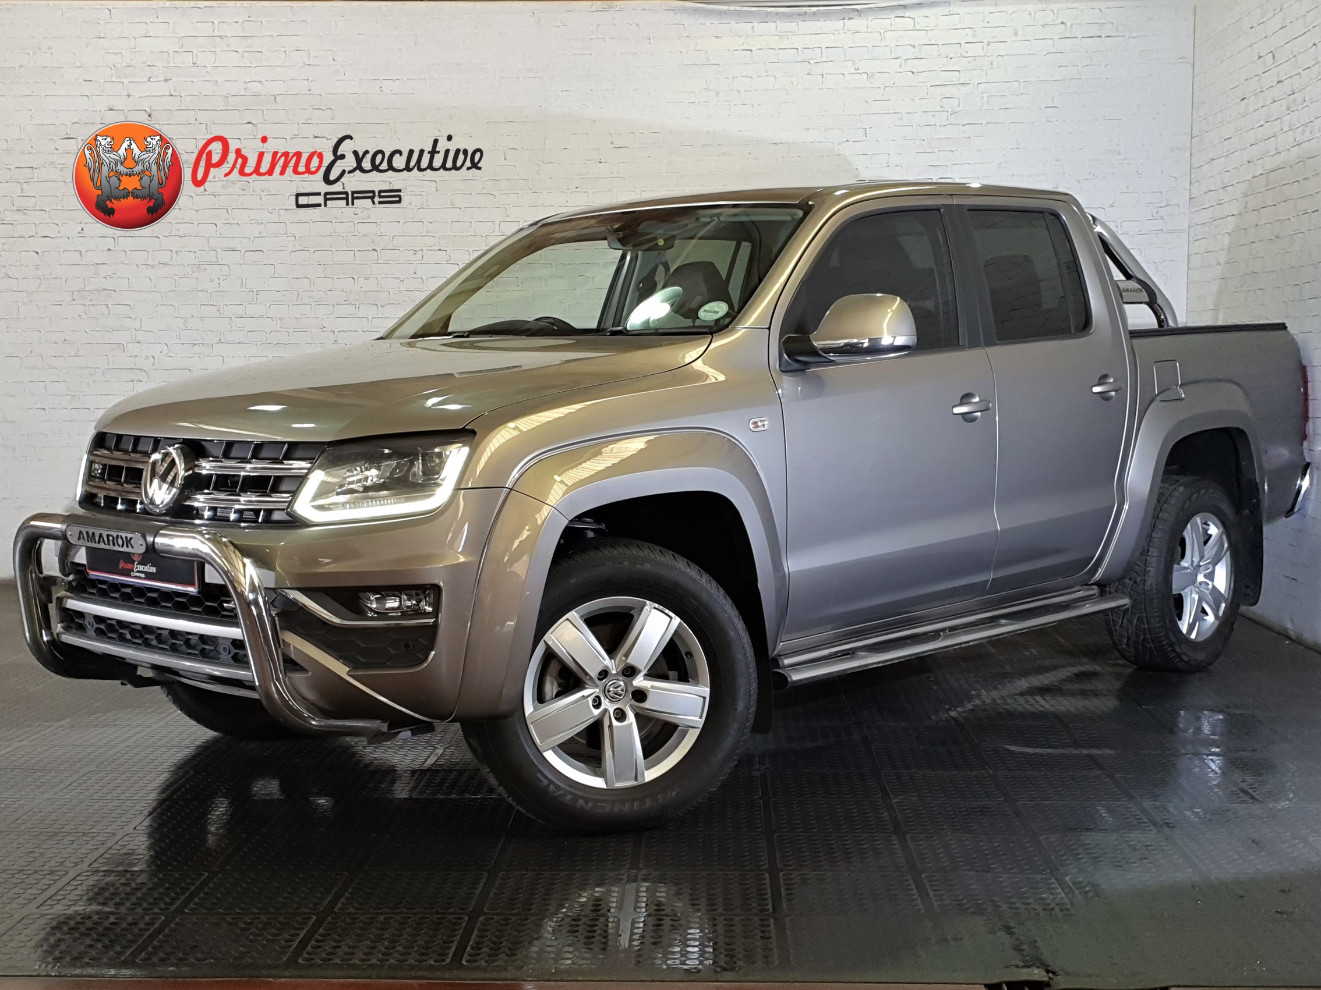 Volkswagen Amarok 3.0 V6 TDI Double Cab Highline Plus 4Motion